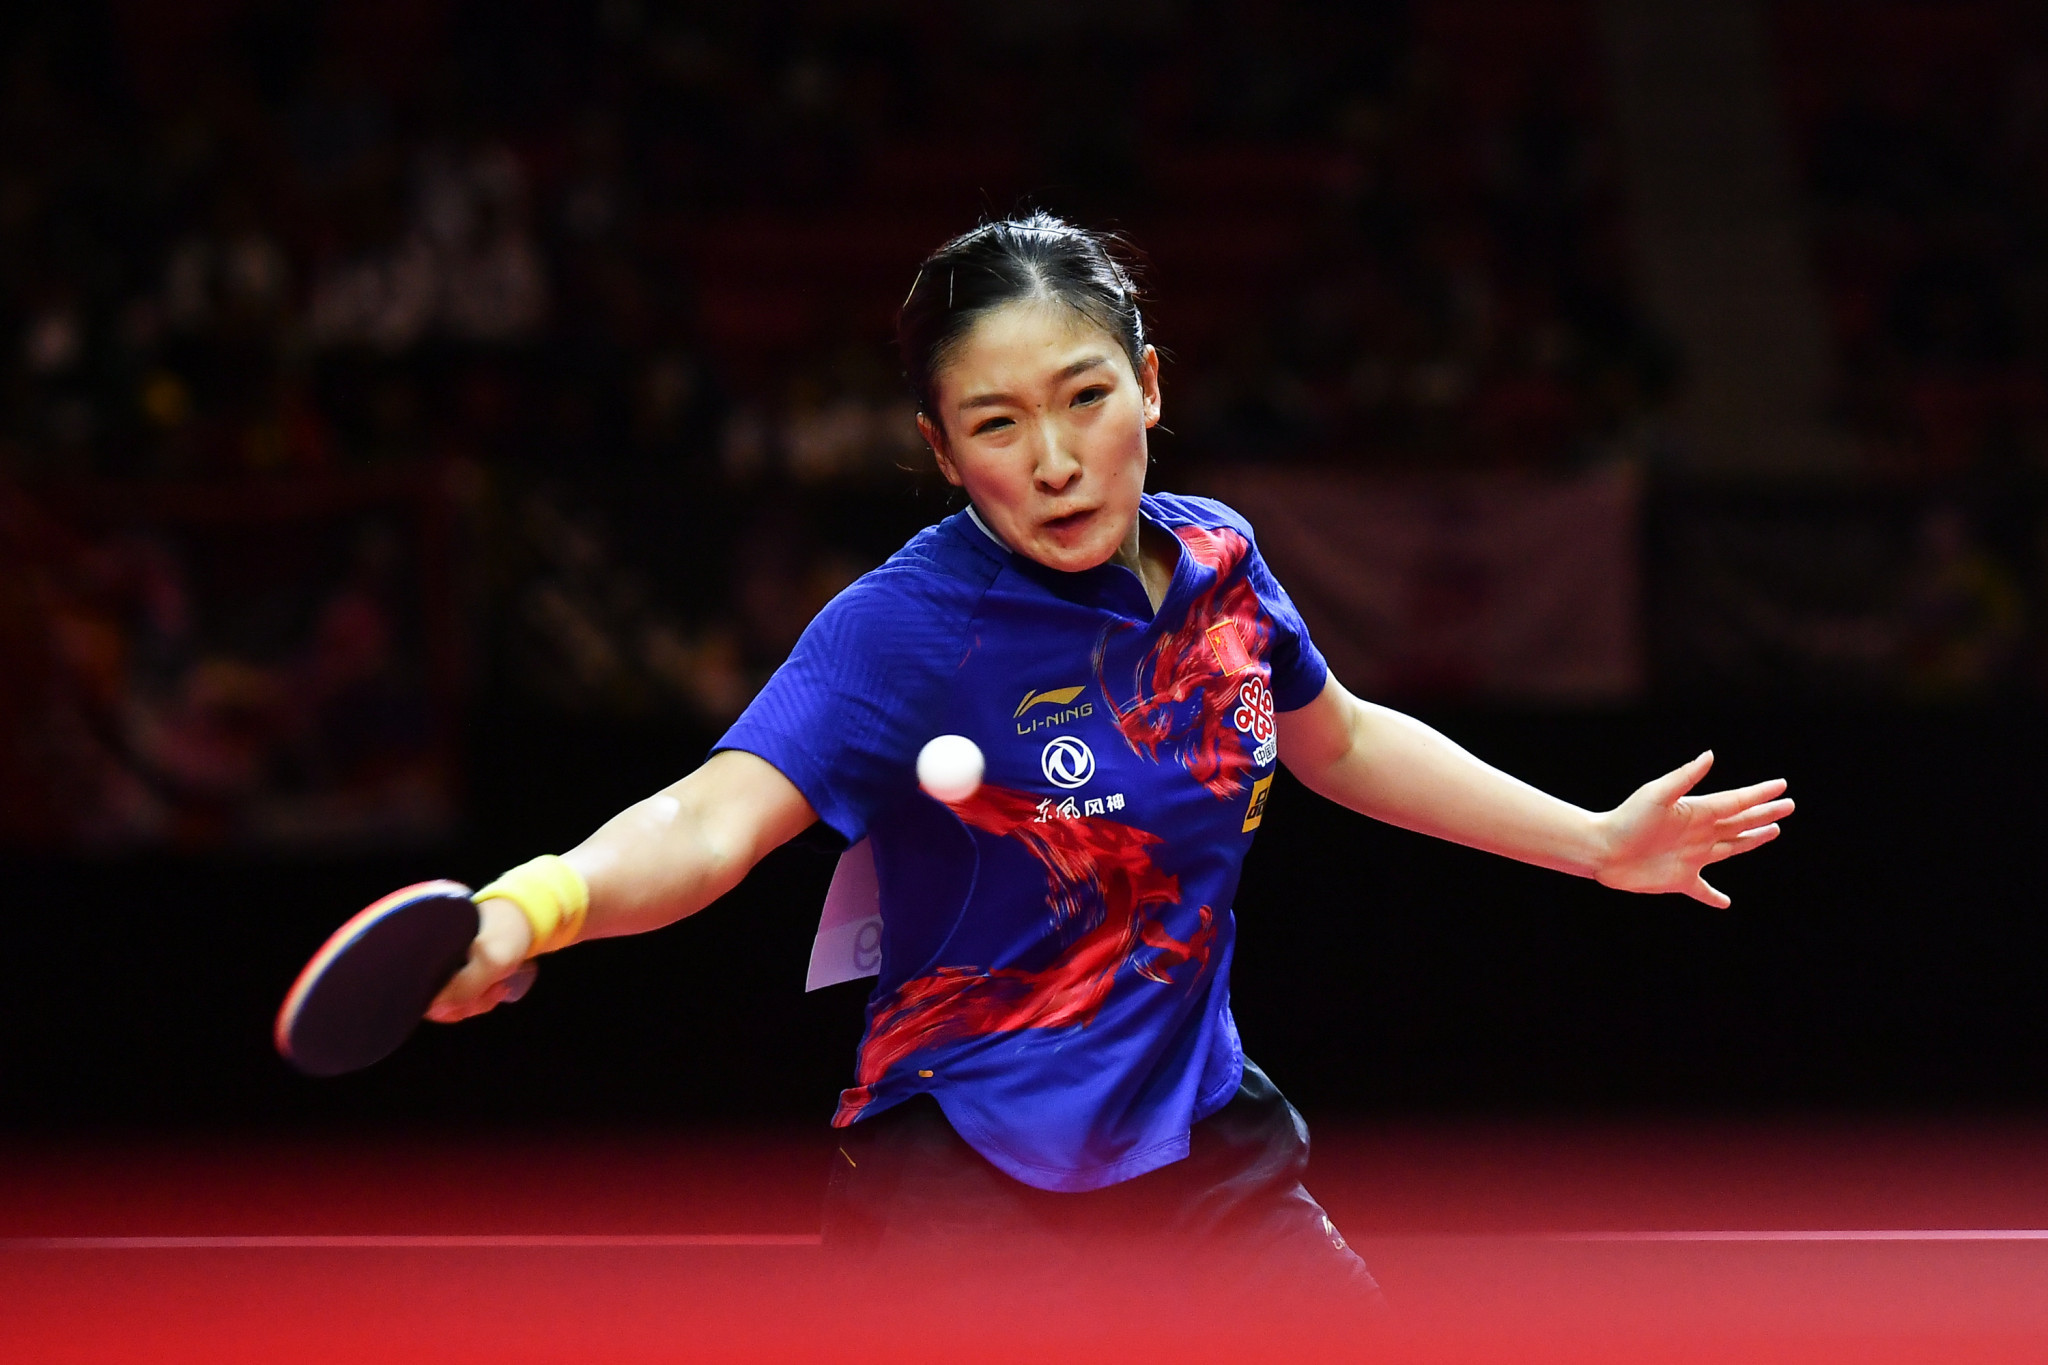 Liu Shiwen won the International Table Tennis Federation Women's World Cup event as the Executive Committee meeting took place in Chengdu ©Getty Images